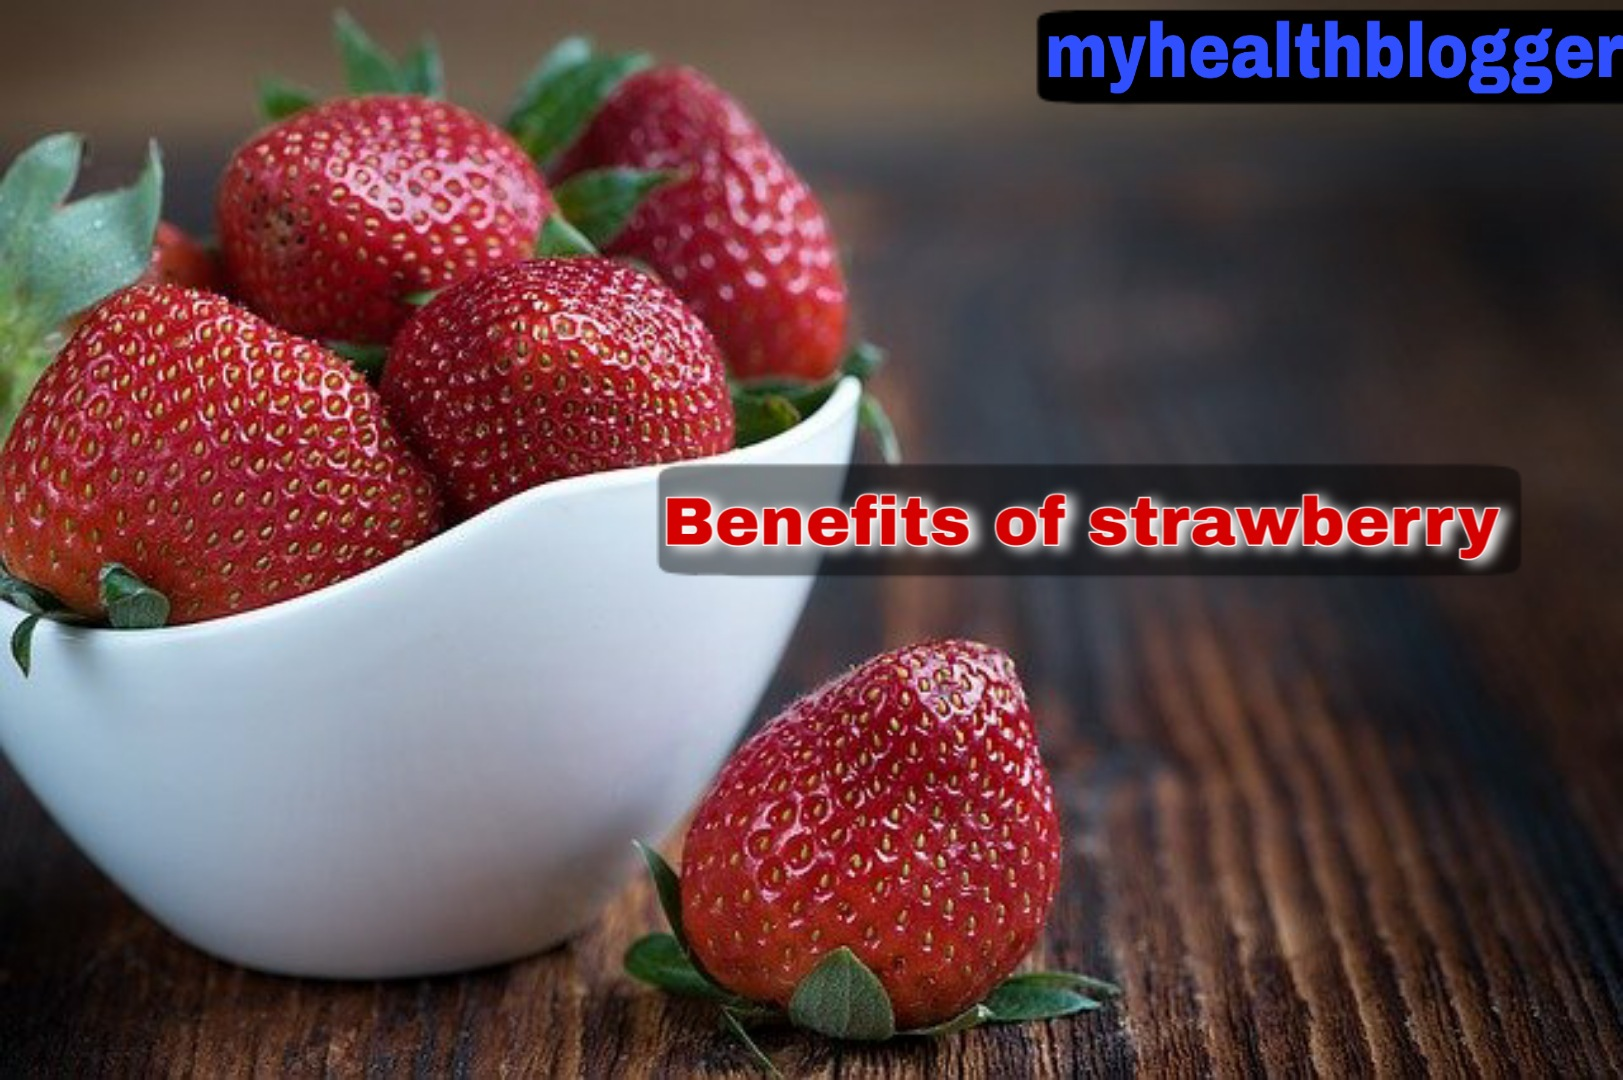 Benefits of strawberry